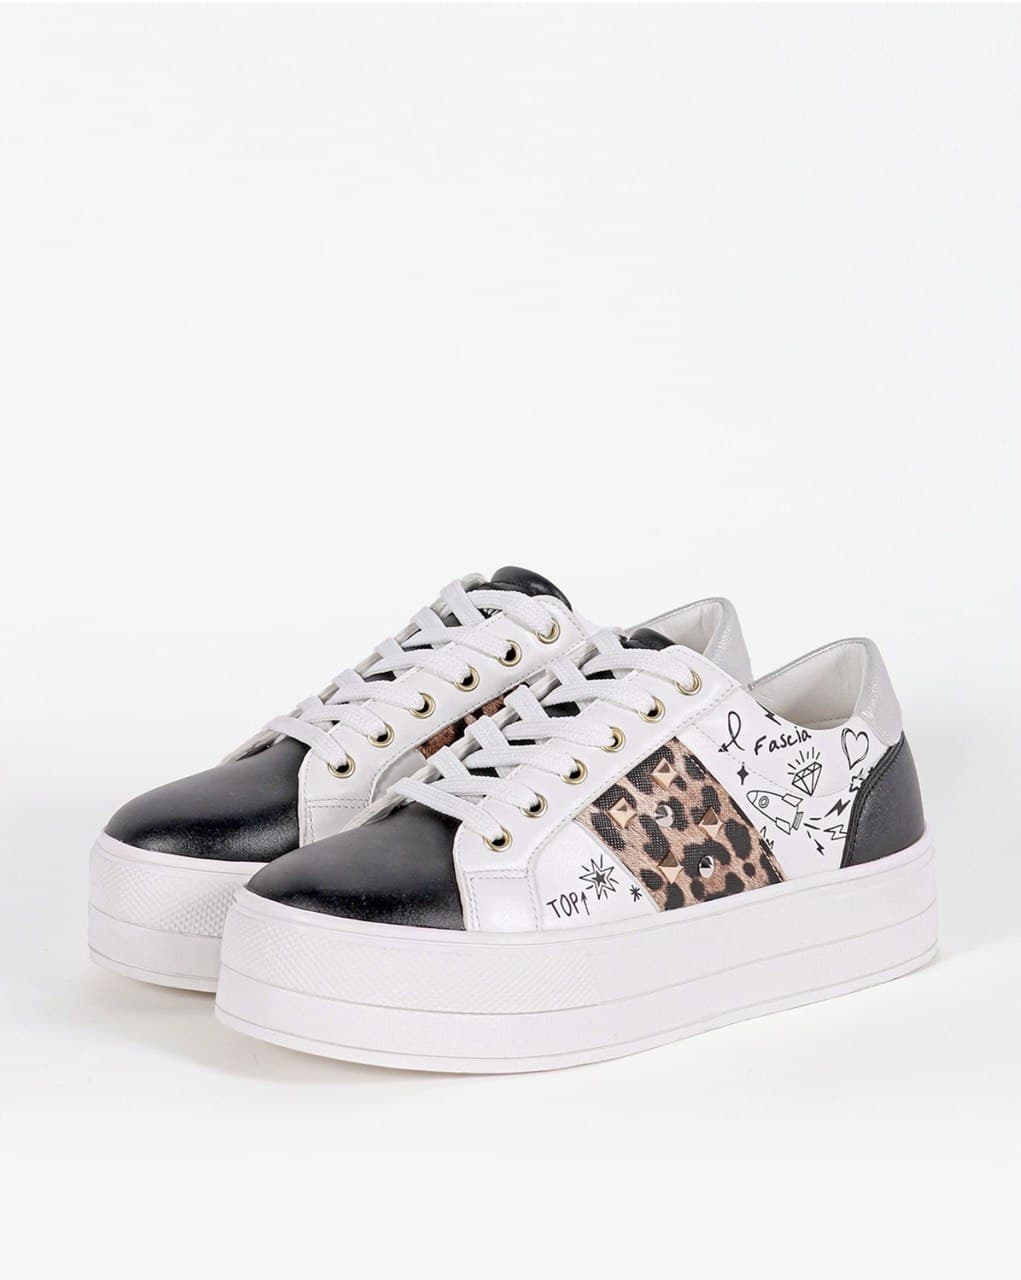 GIO CELLINI | SHOES | ST022BIAN